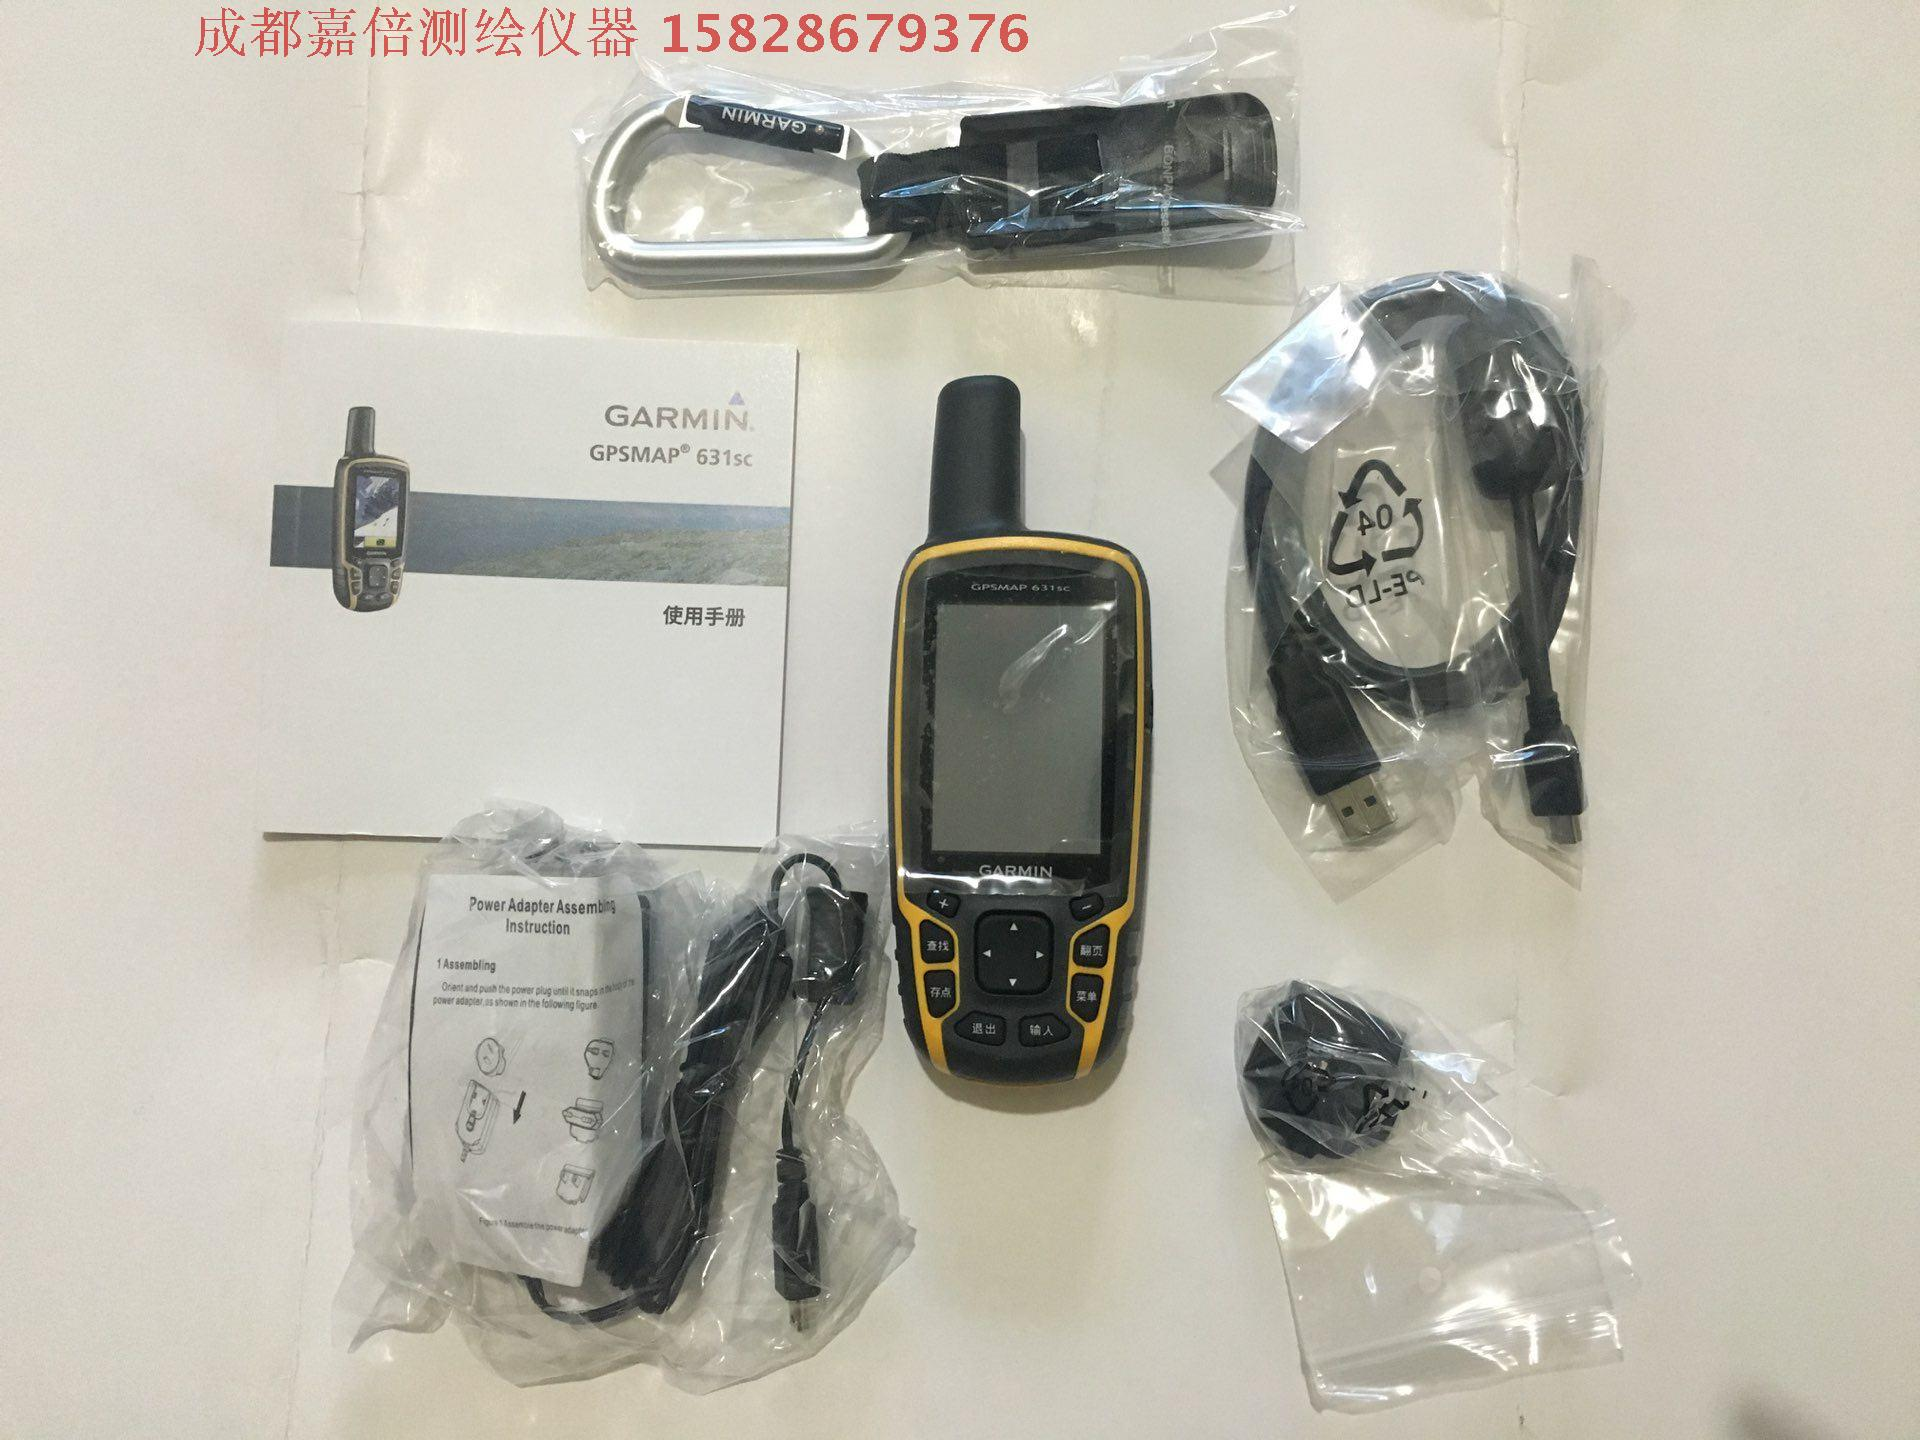 Sichuan Garmin Derek GPSmap 631SC Handheld GPS Measuring Instrument Of Surveying And Mapping Industry Forestry Mu 639SC